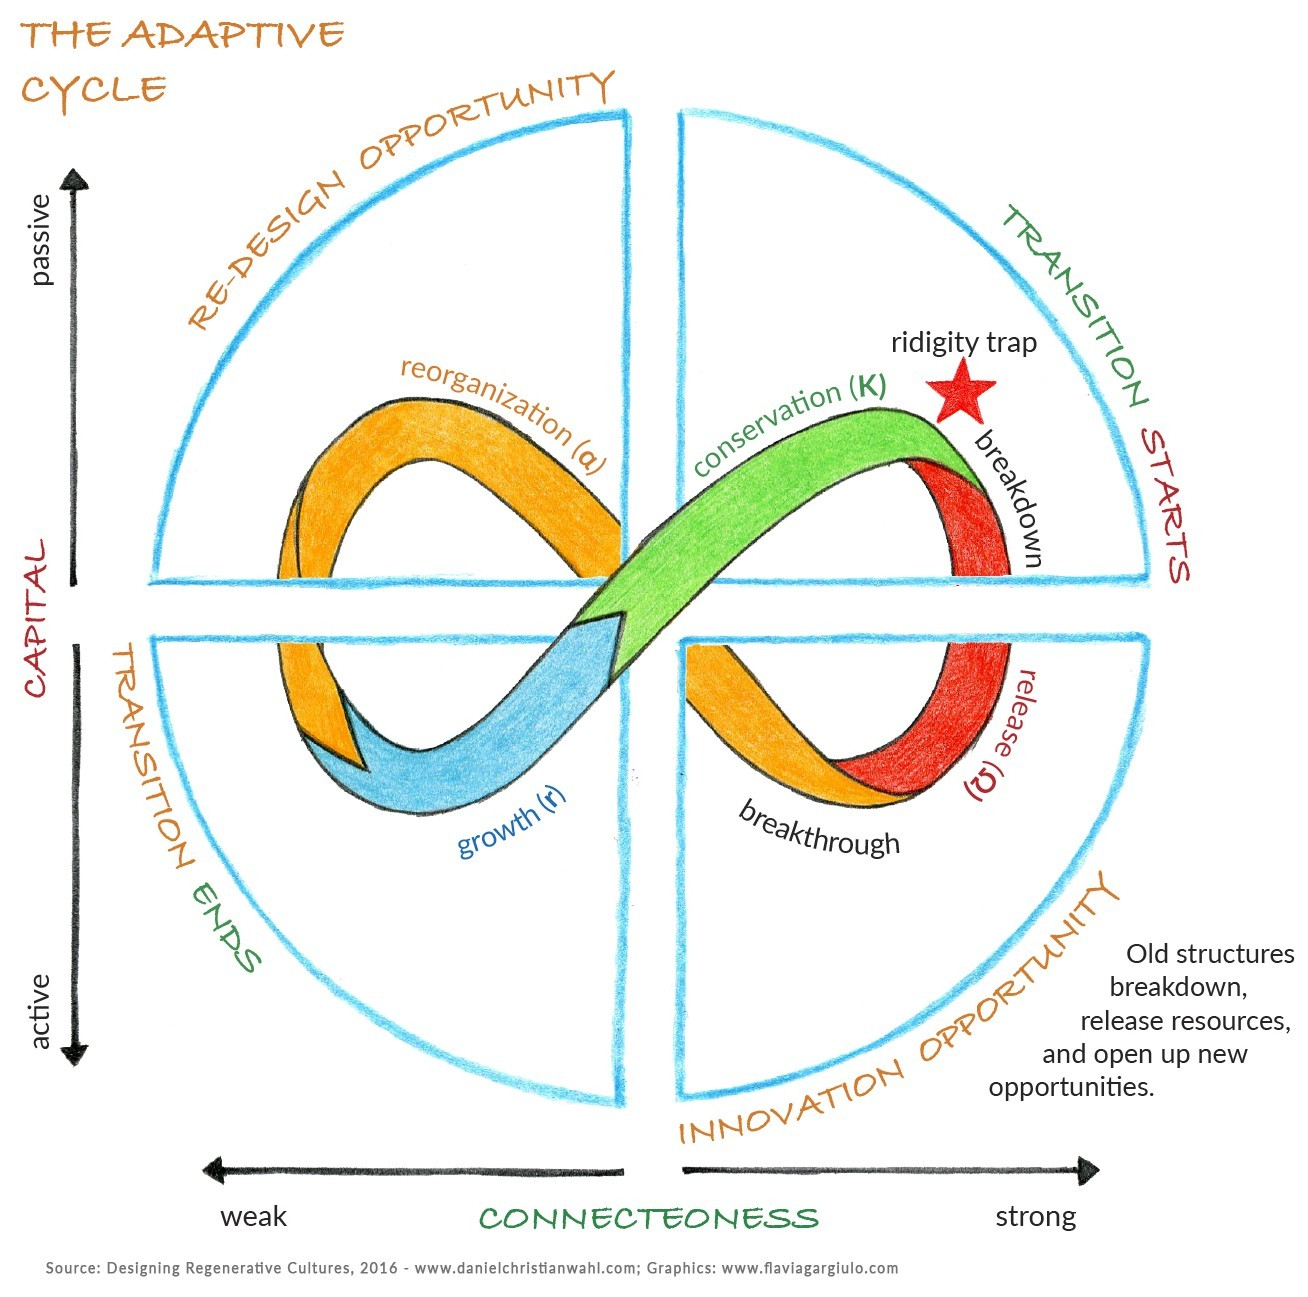 Program Evolution and the Adaptive Cycle